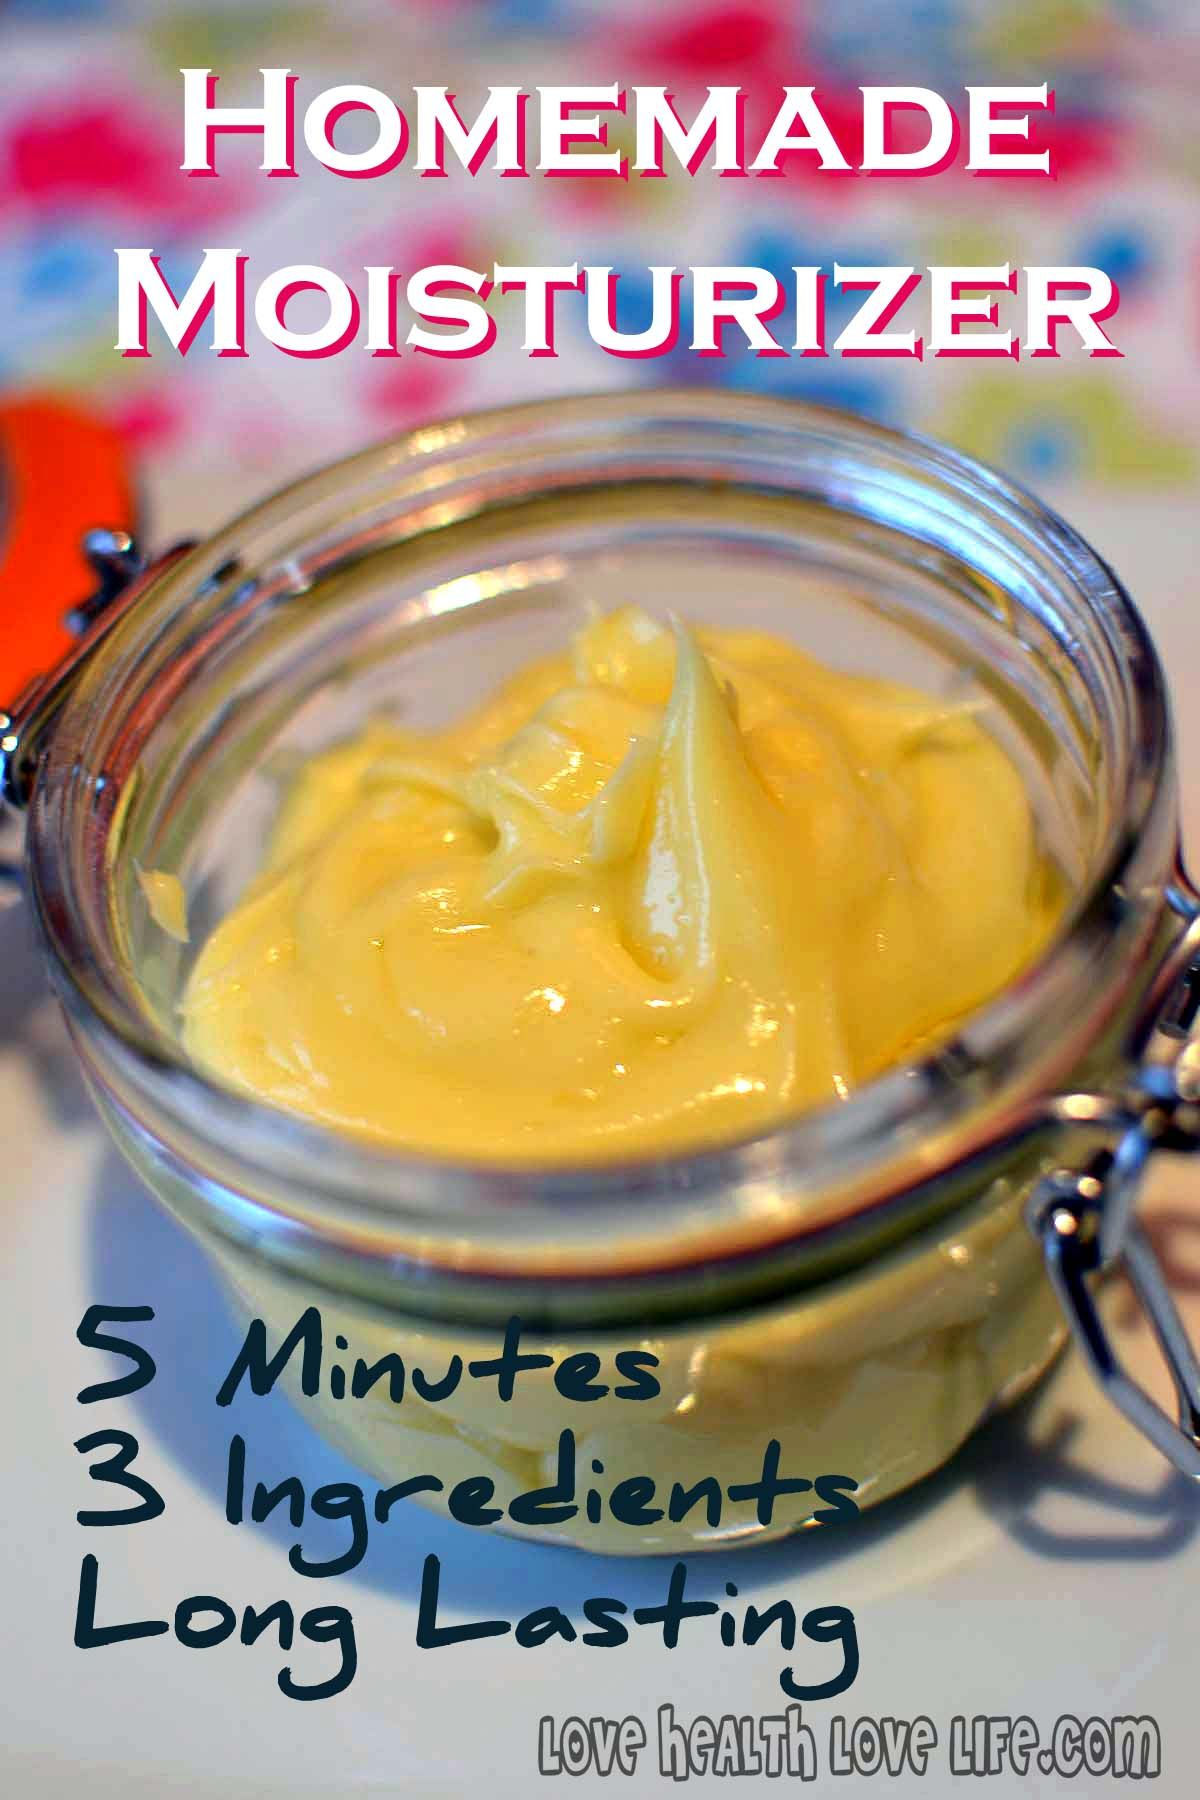 Homemade Moisturizer For Dry Skin 5 Minutes 3 Ingredients And Fool Proof Homemade Moisturizer Moisturizer For Dry Skin Skin Care Cream